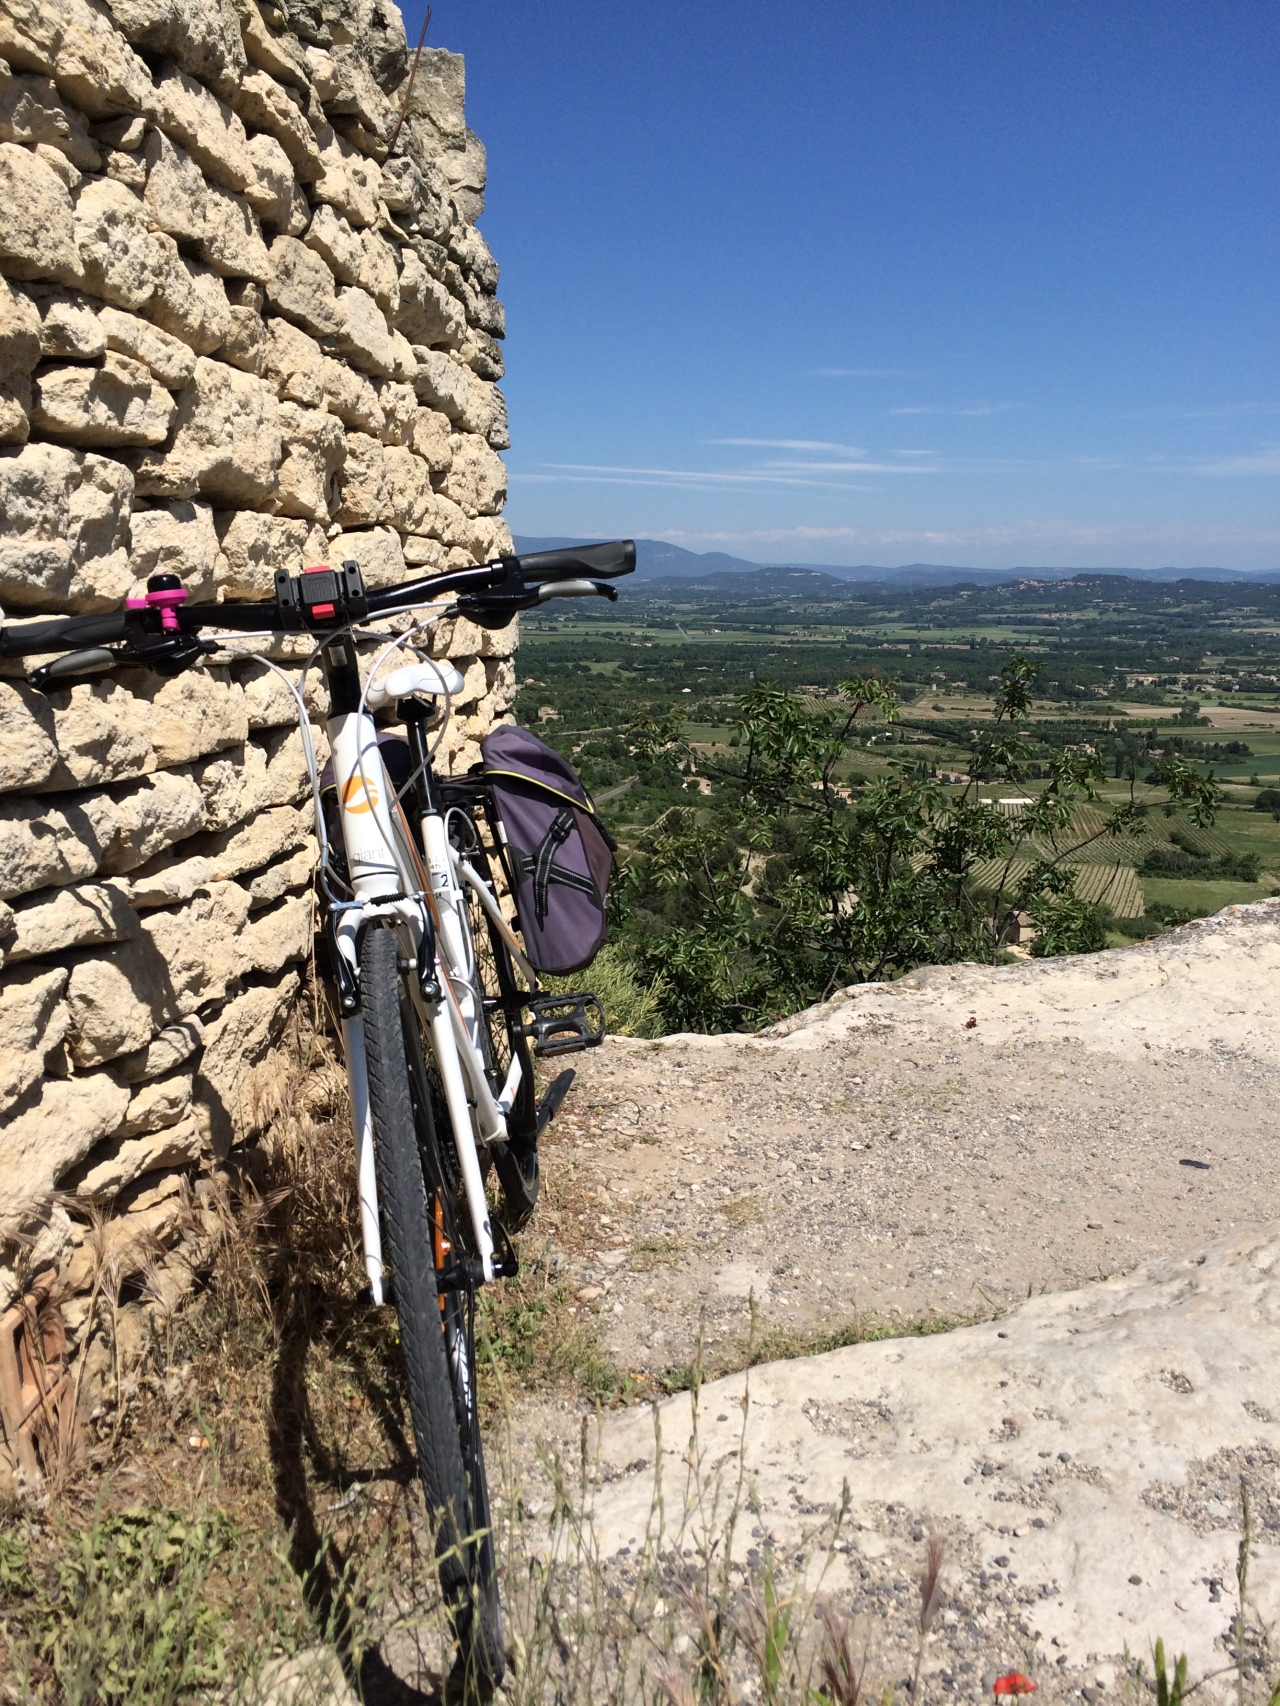 Two weeks in Provence – Day 2 – Up with the lark and a day on the bike